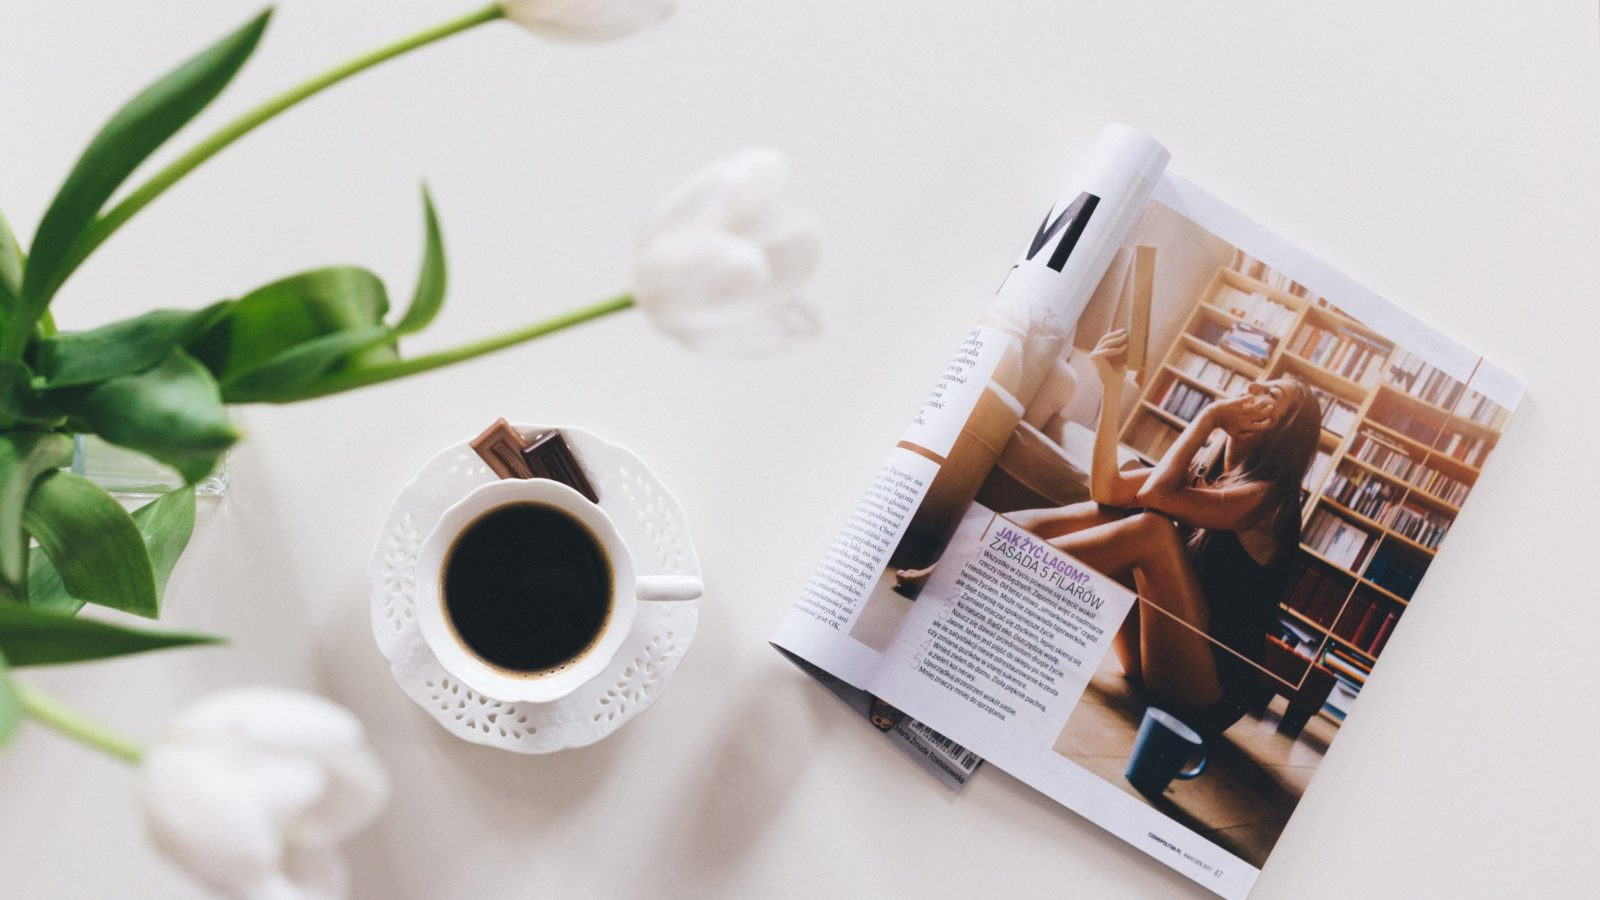 image of magazine and coffee